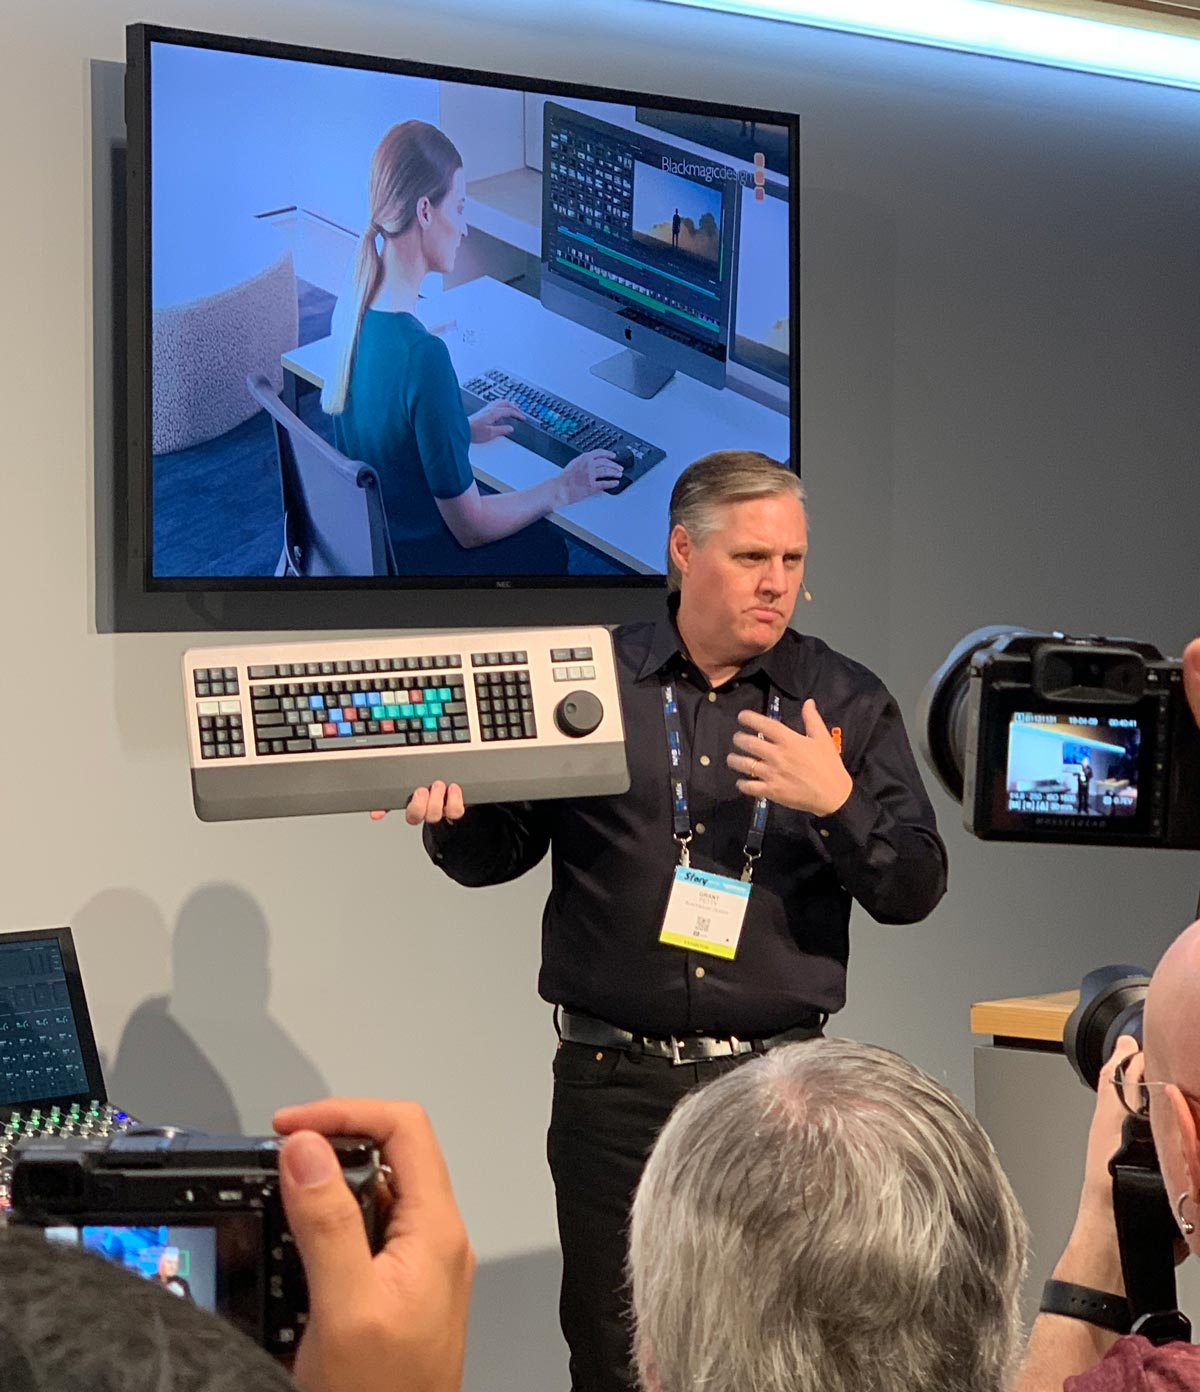 Day 1 of Nab 2019 - It's All About a Keyboard and 8k Production